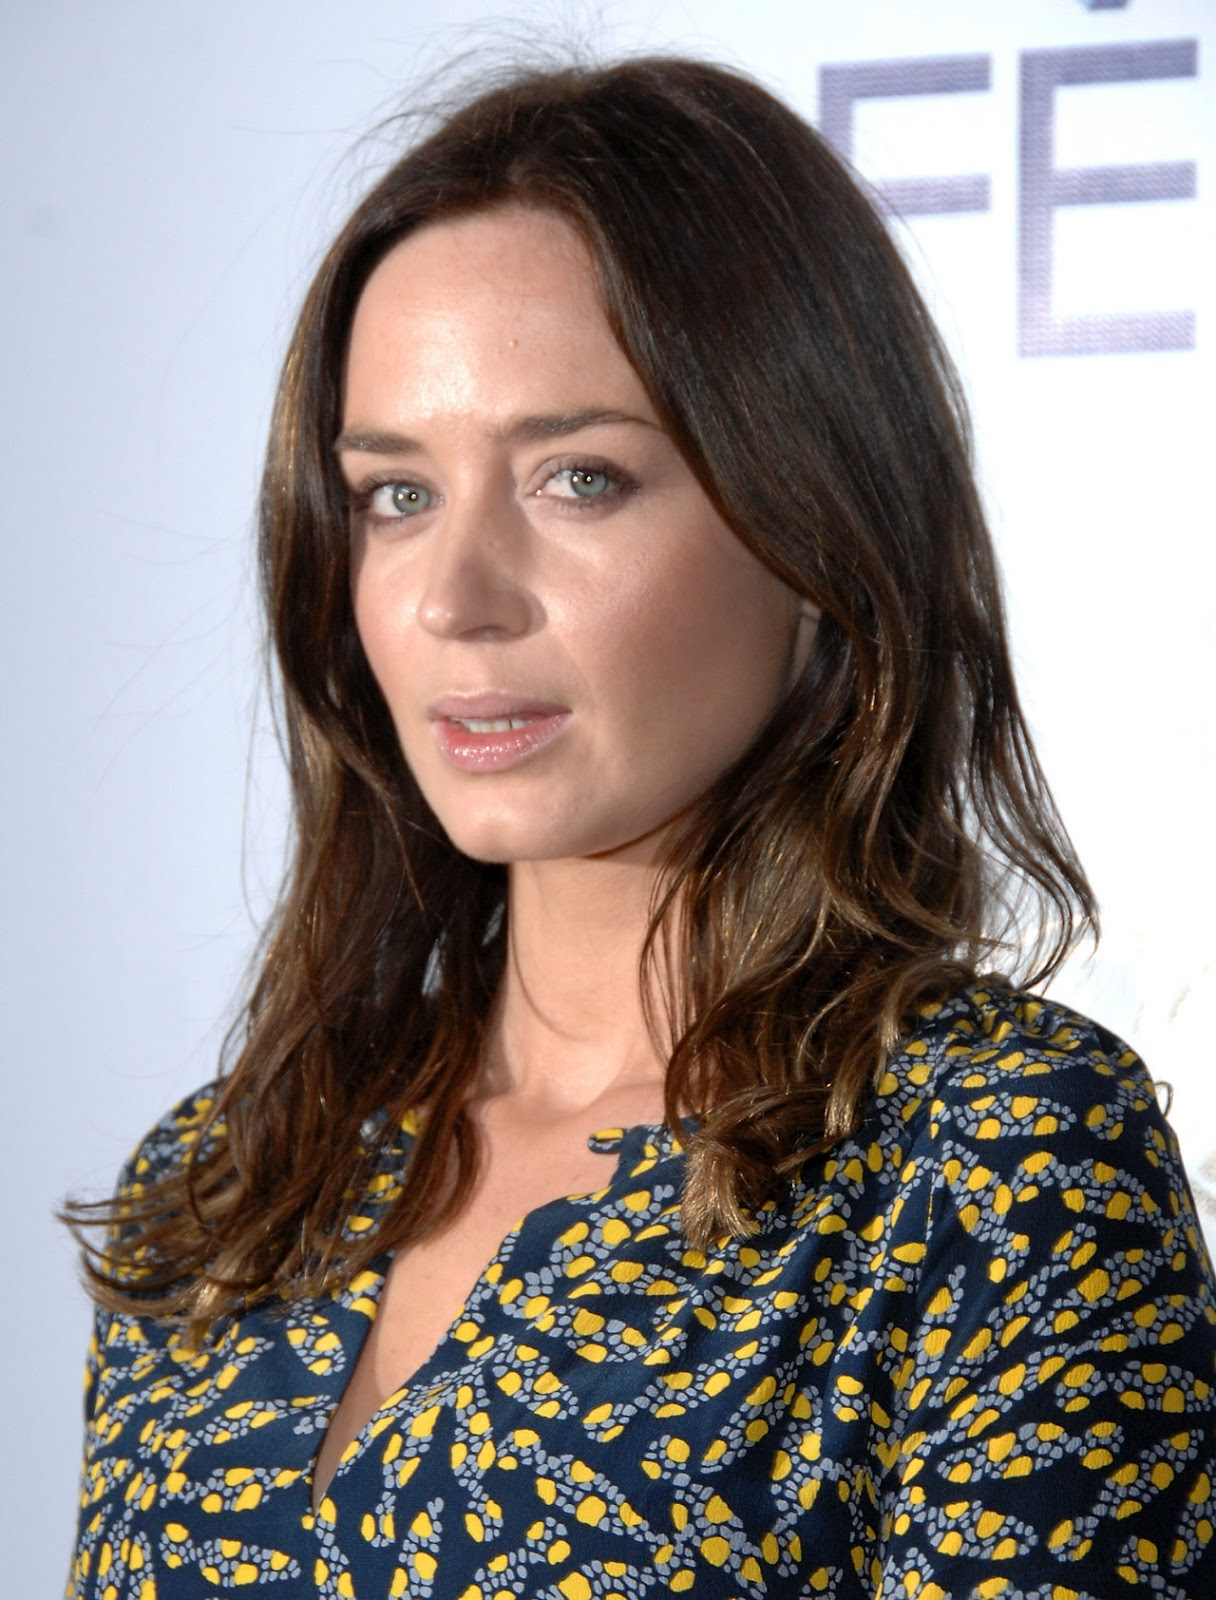 Phenomenal A New Life Hartz English Actress Emily Blunt Hairstyle Short Hairstyles Gunalazisus